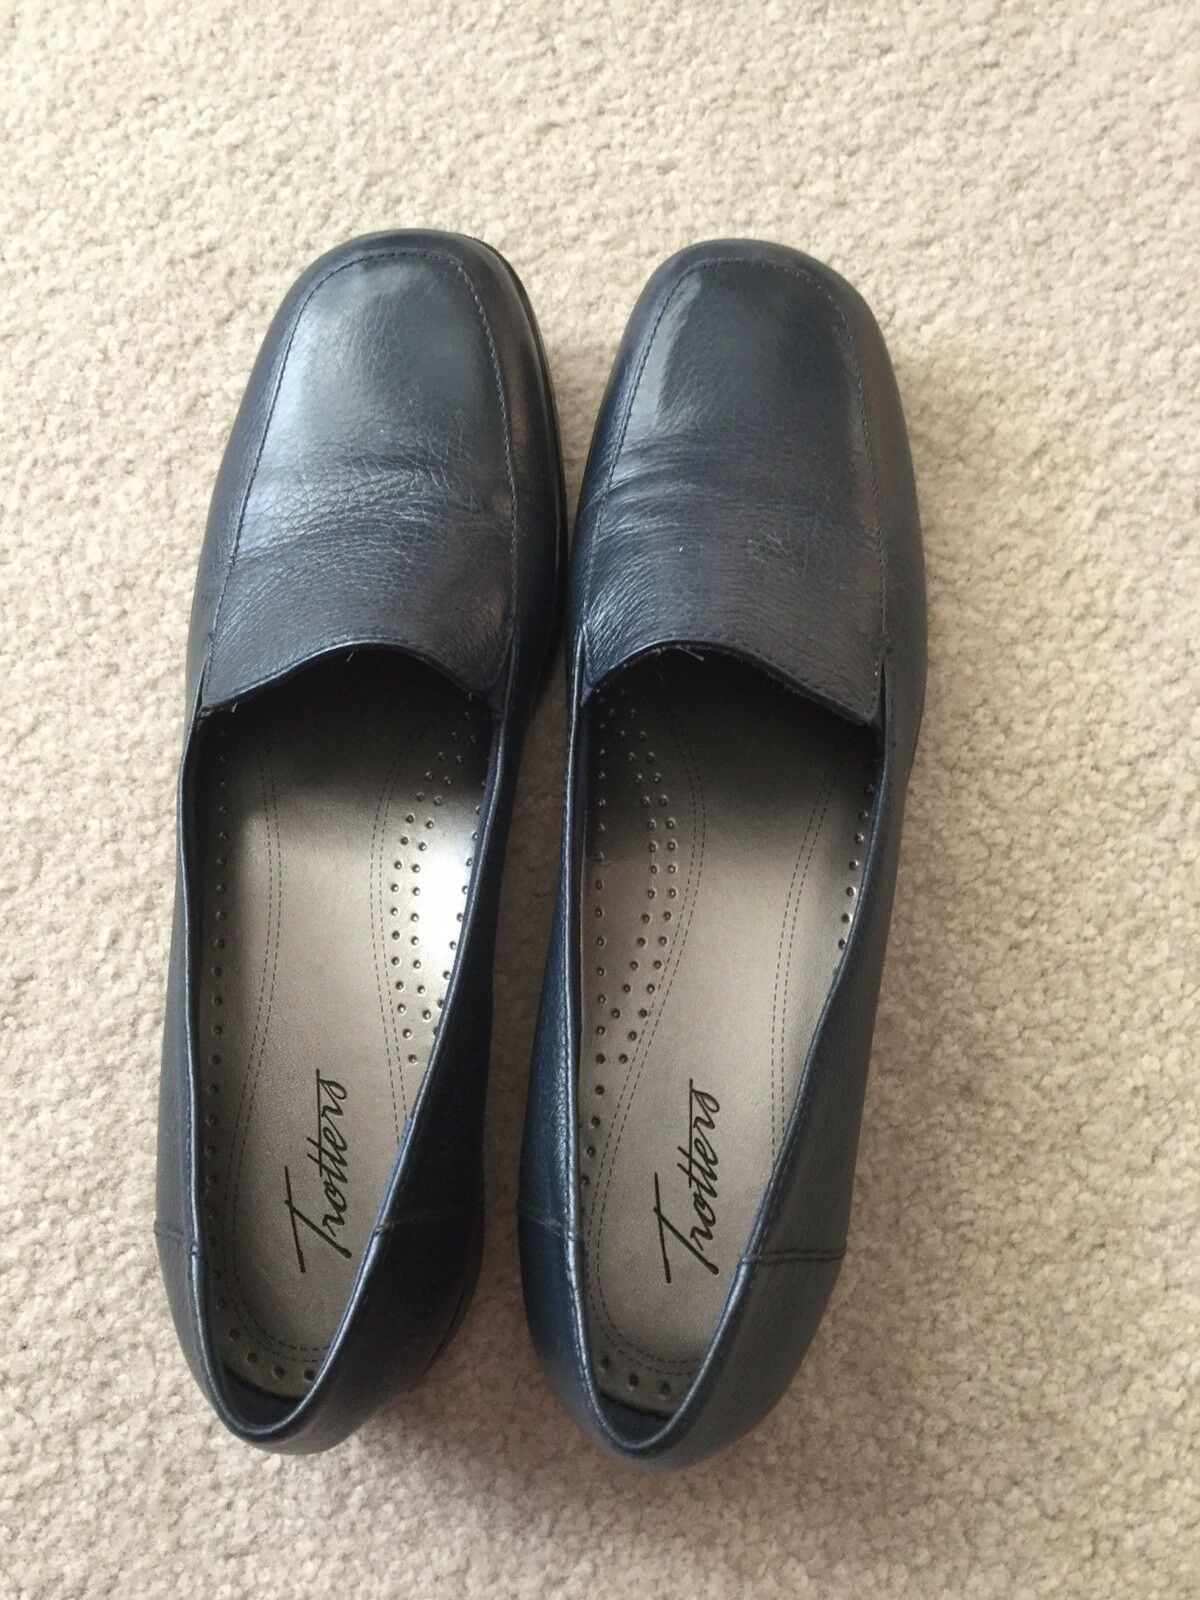 Tredters womens womens womens navy shoes size 11S f6667e